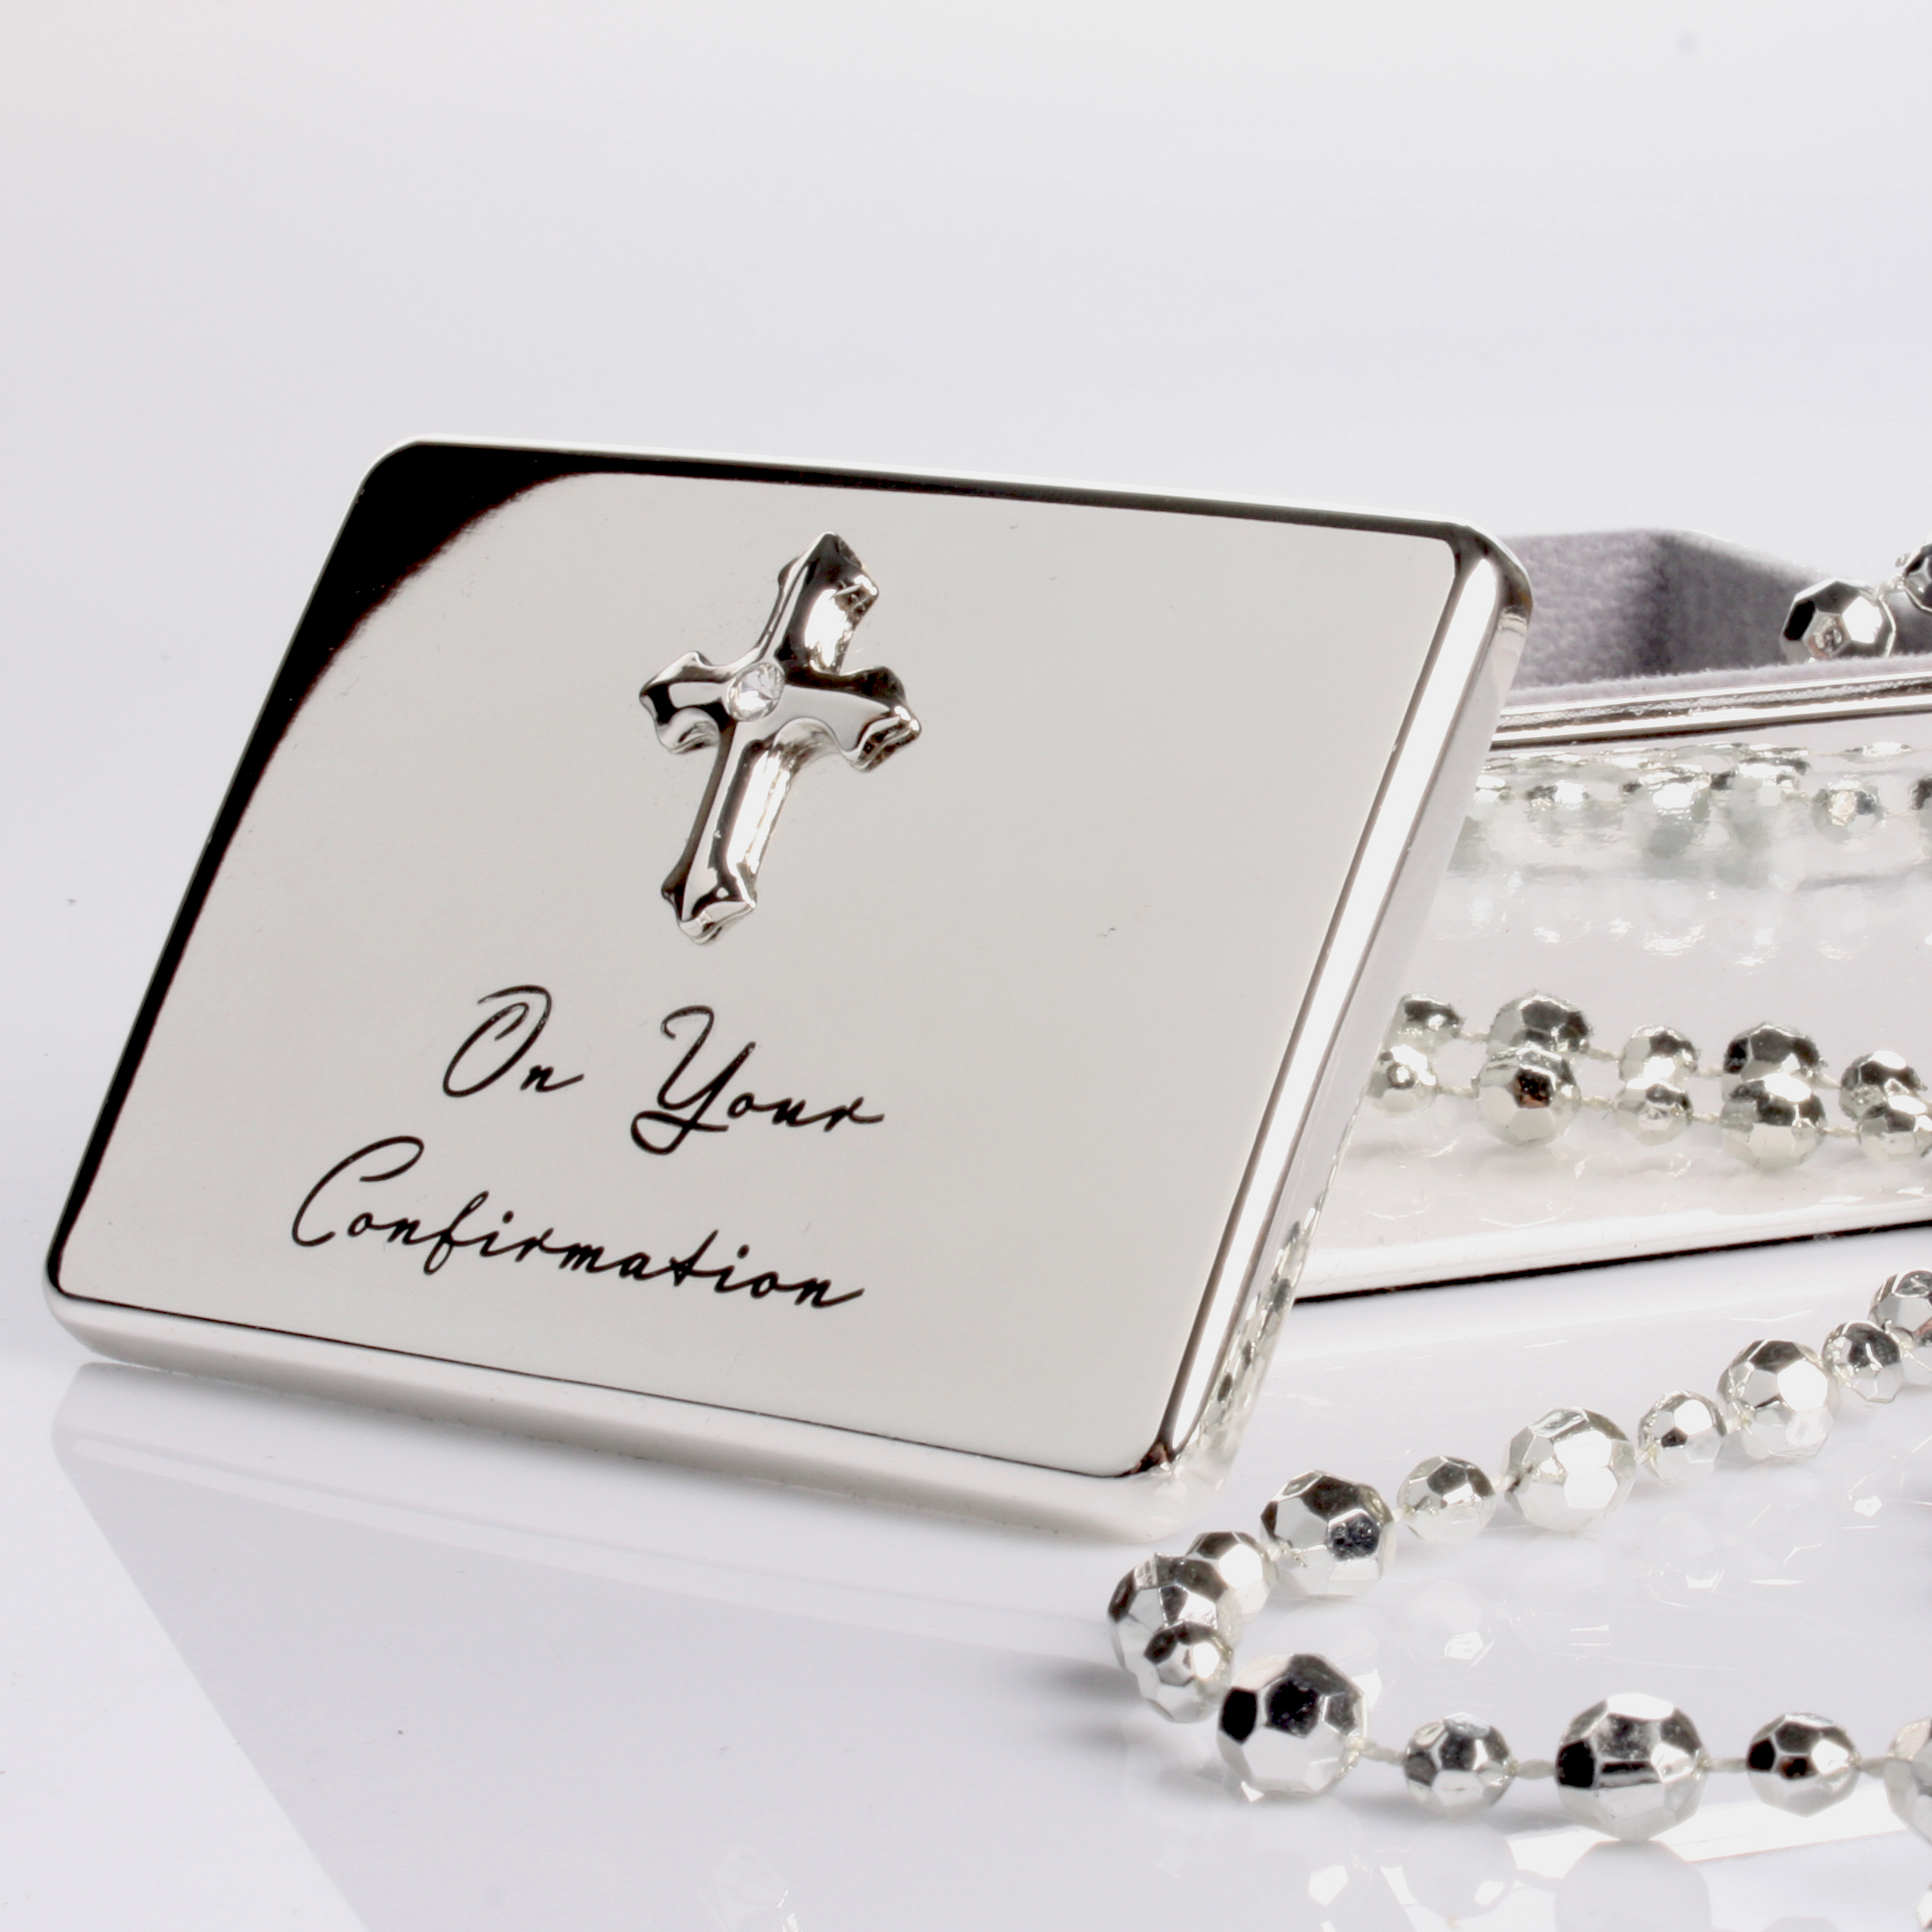 Engraved On Your Confirmation Treasure Box - Engraved Gifts